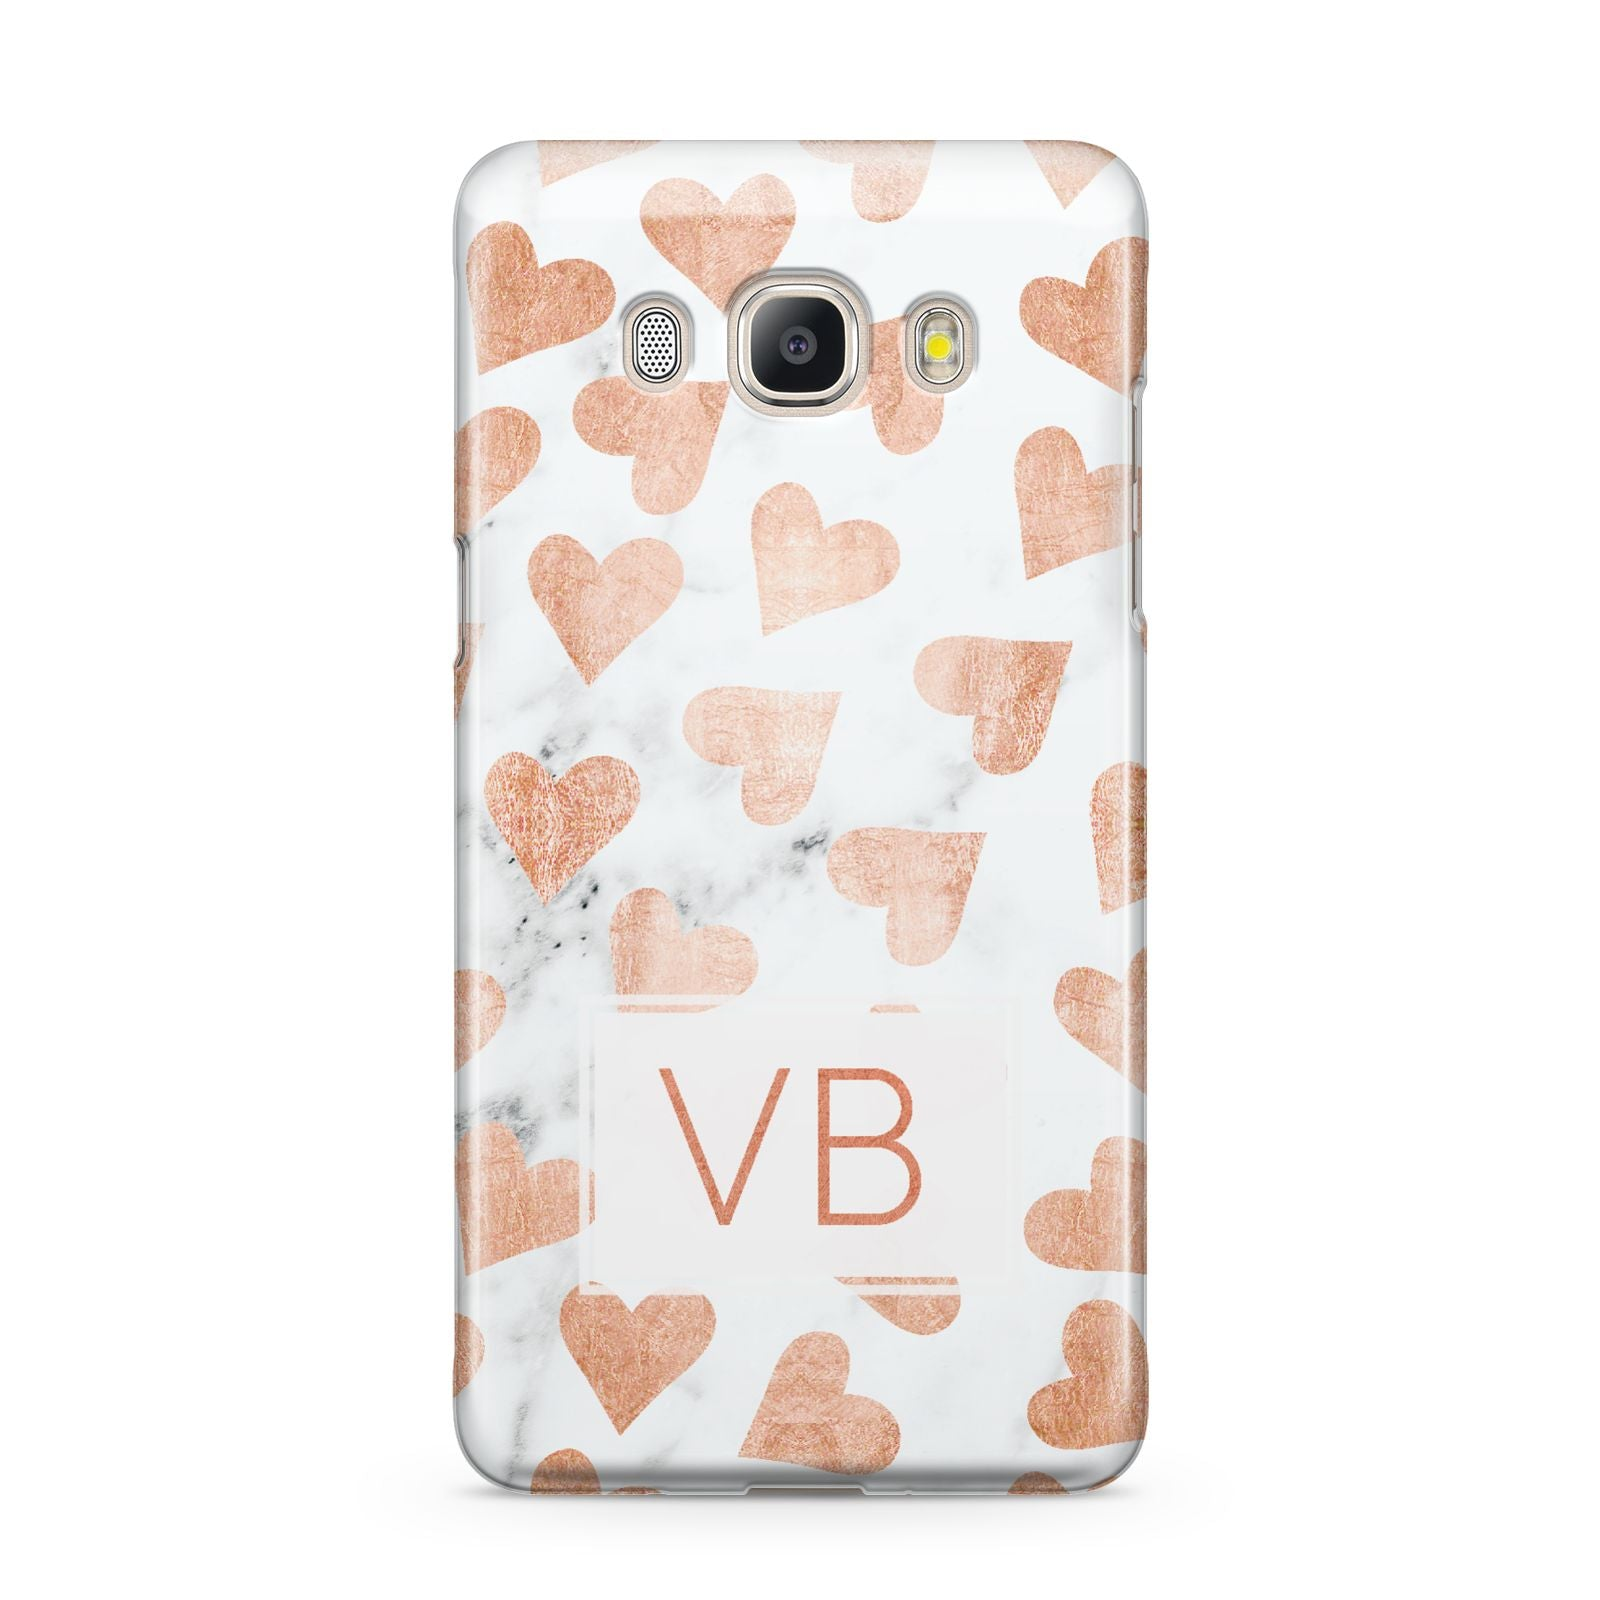 Personalised Heart Initialled Marble Samsung Galaxy J5 2016 Case